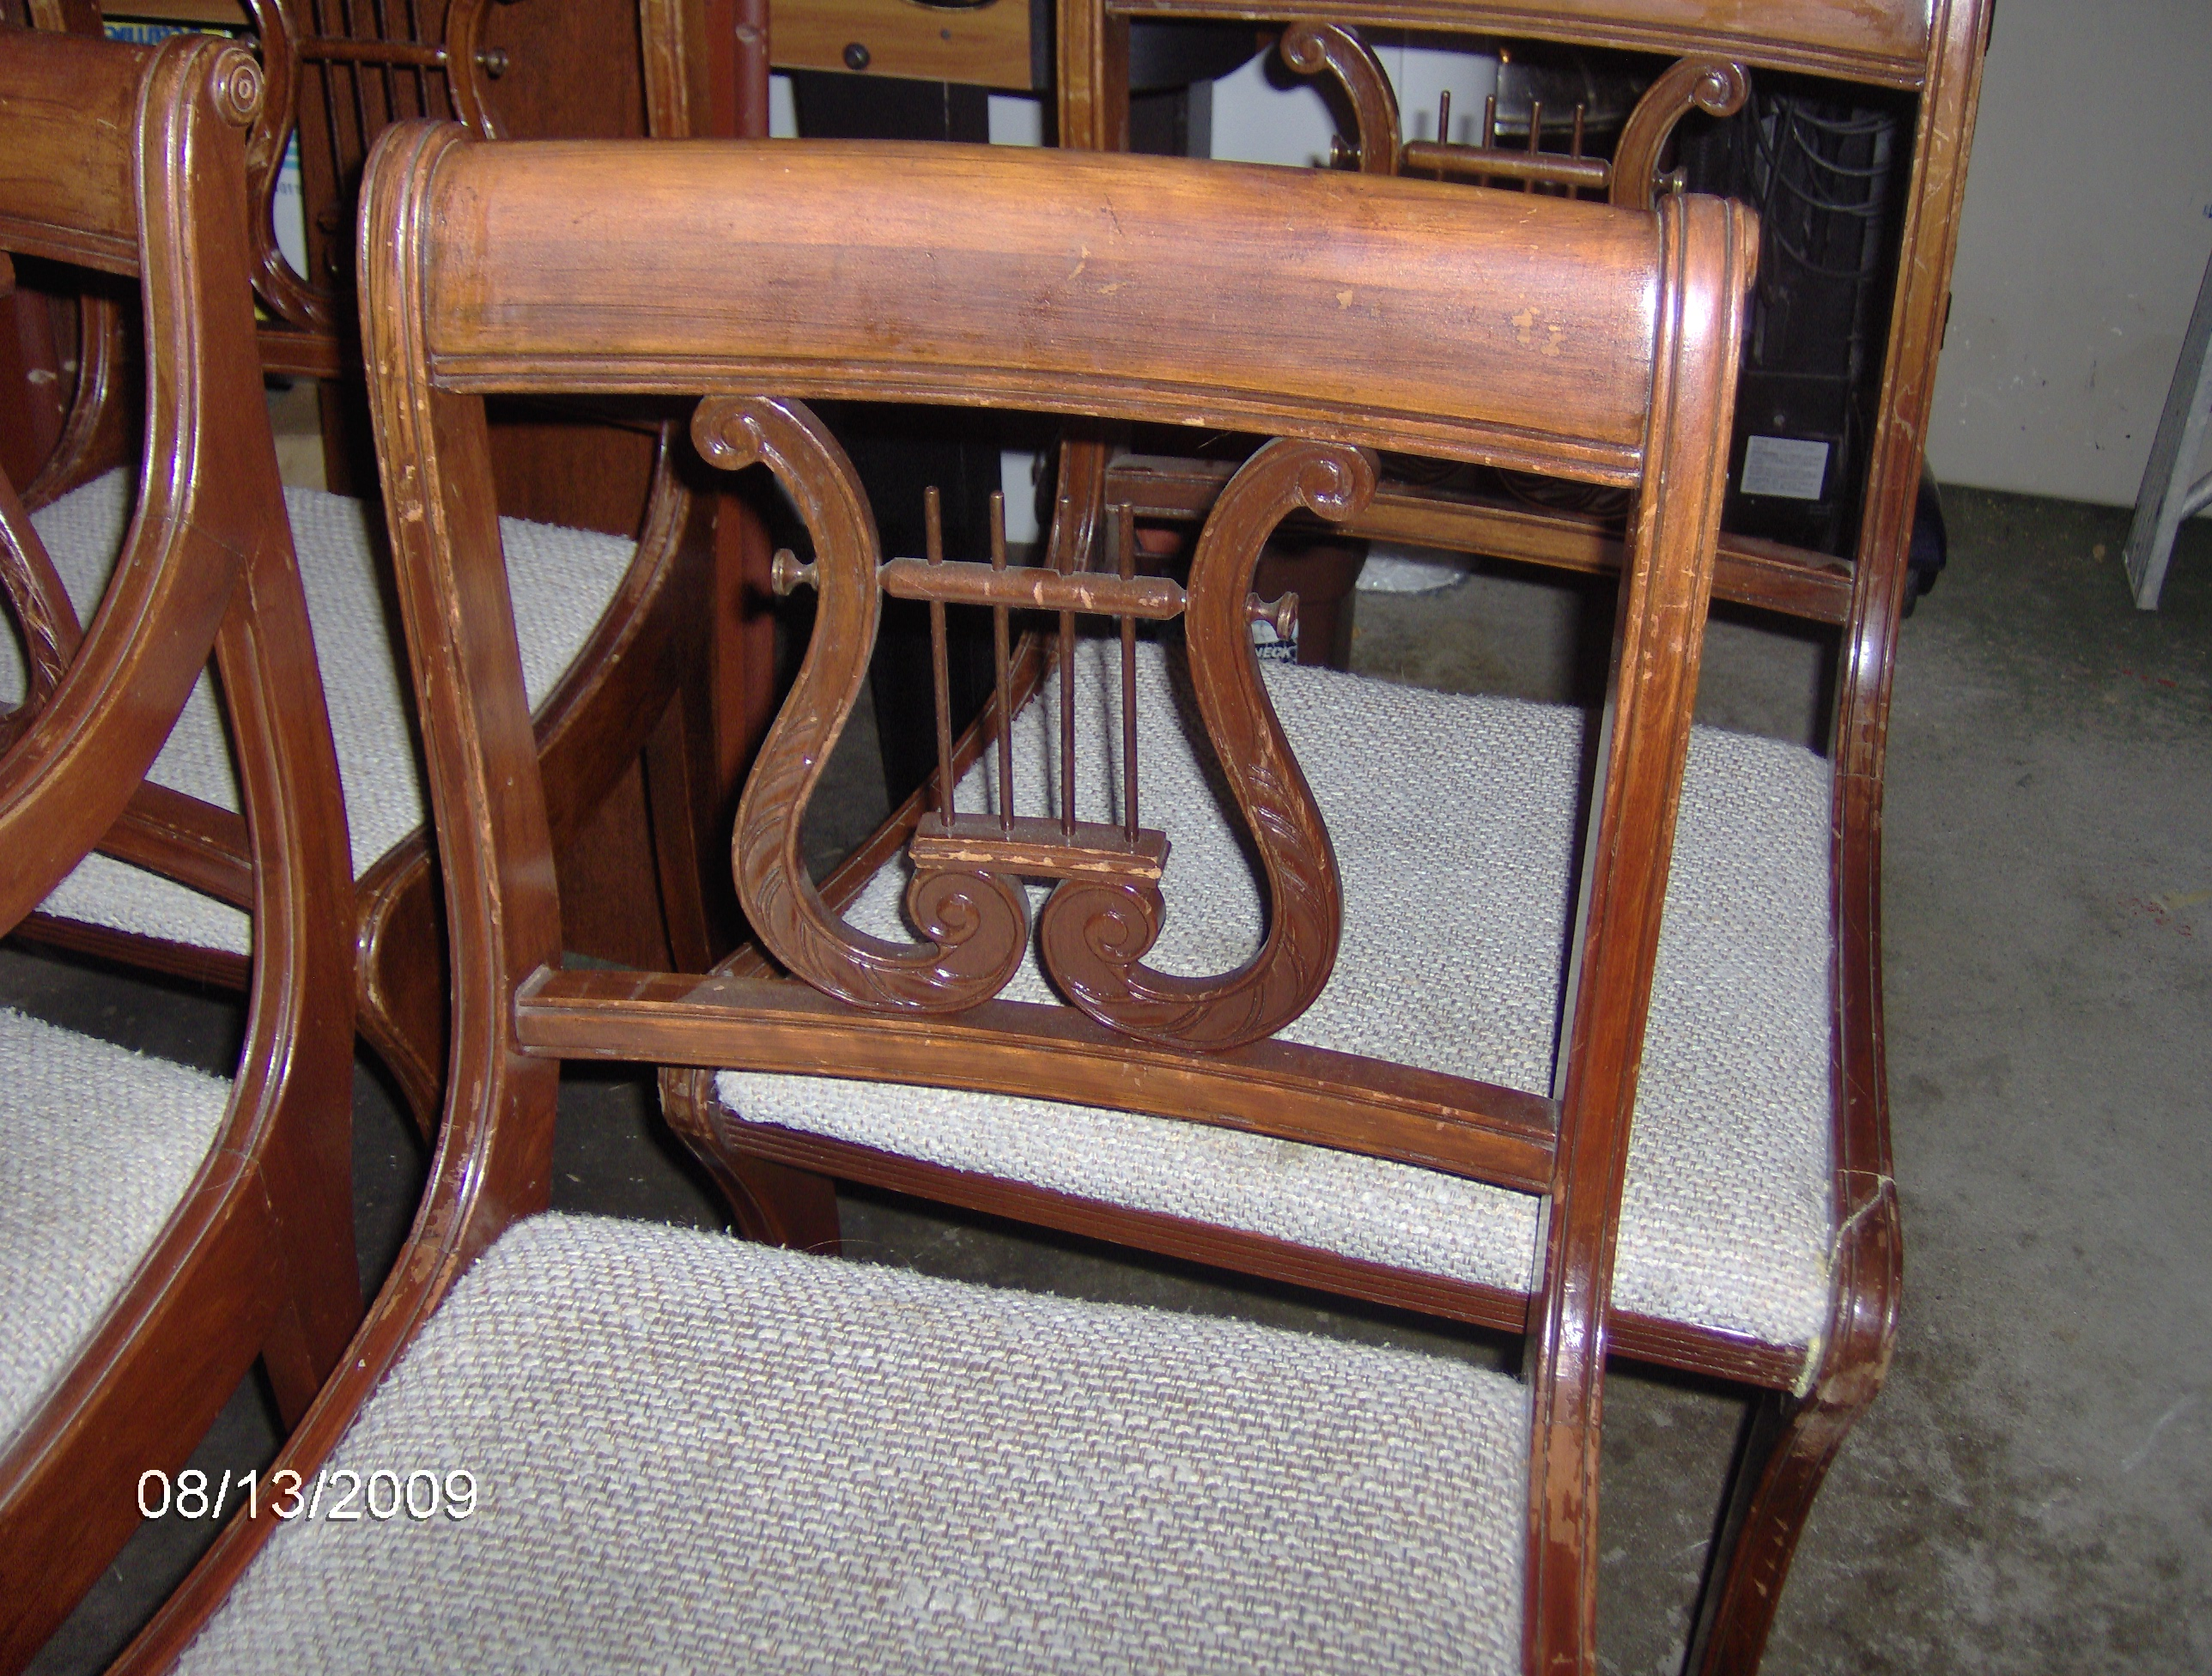 Antique Duncan Phyfe Drop Leaf Table And Chairs For Sale Antiques